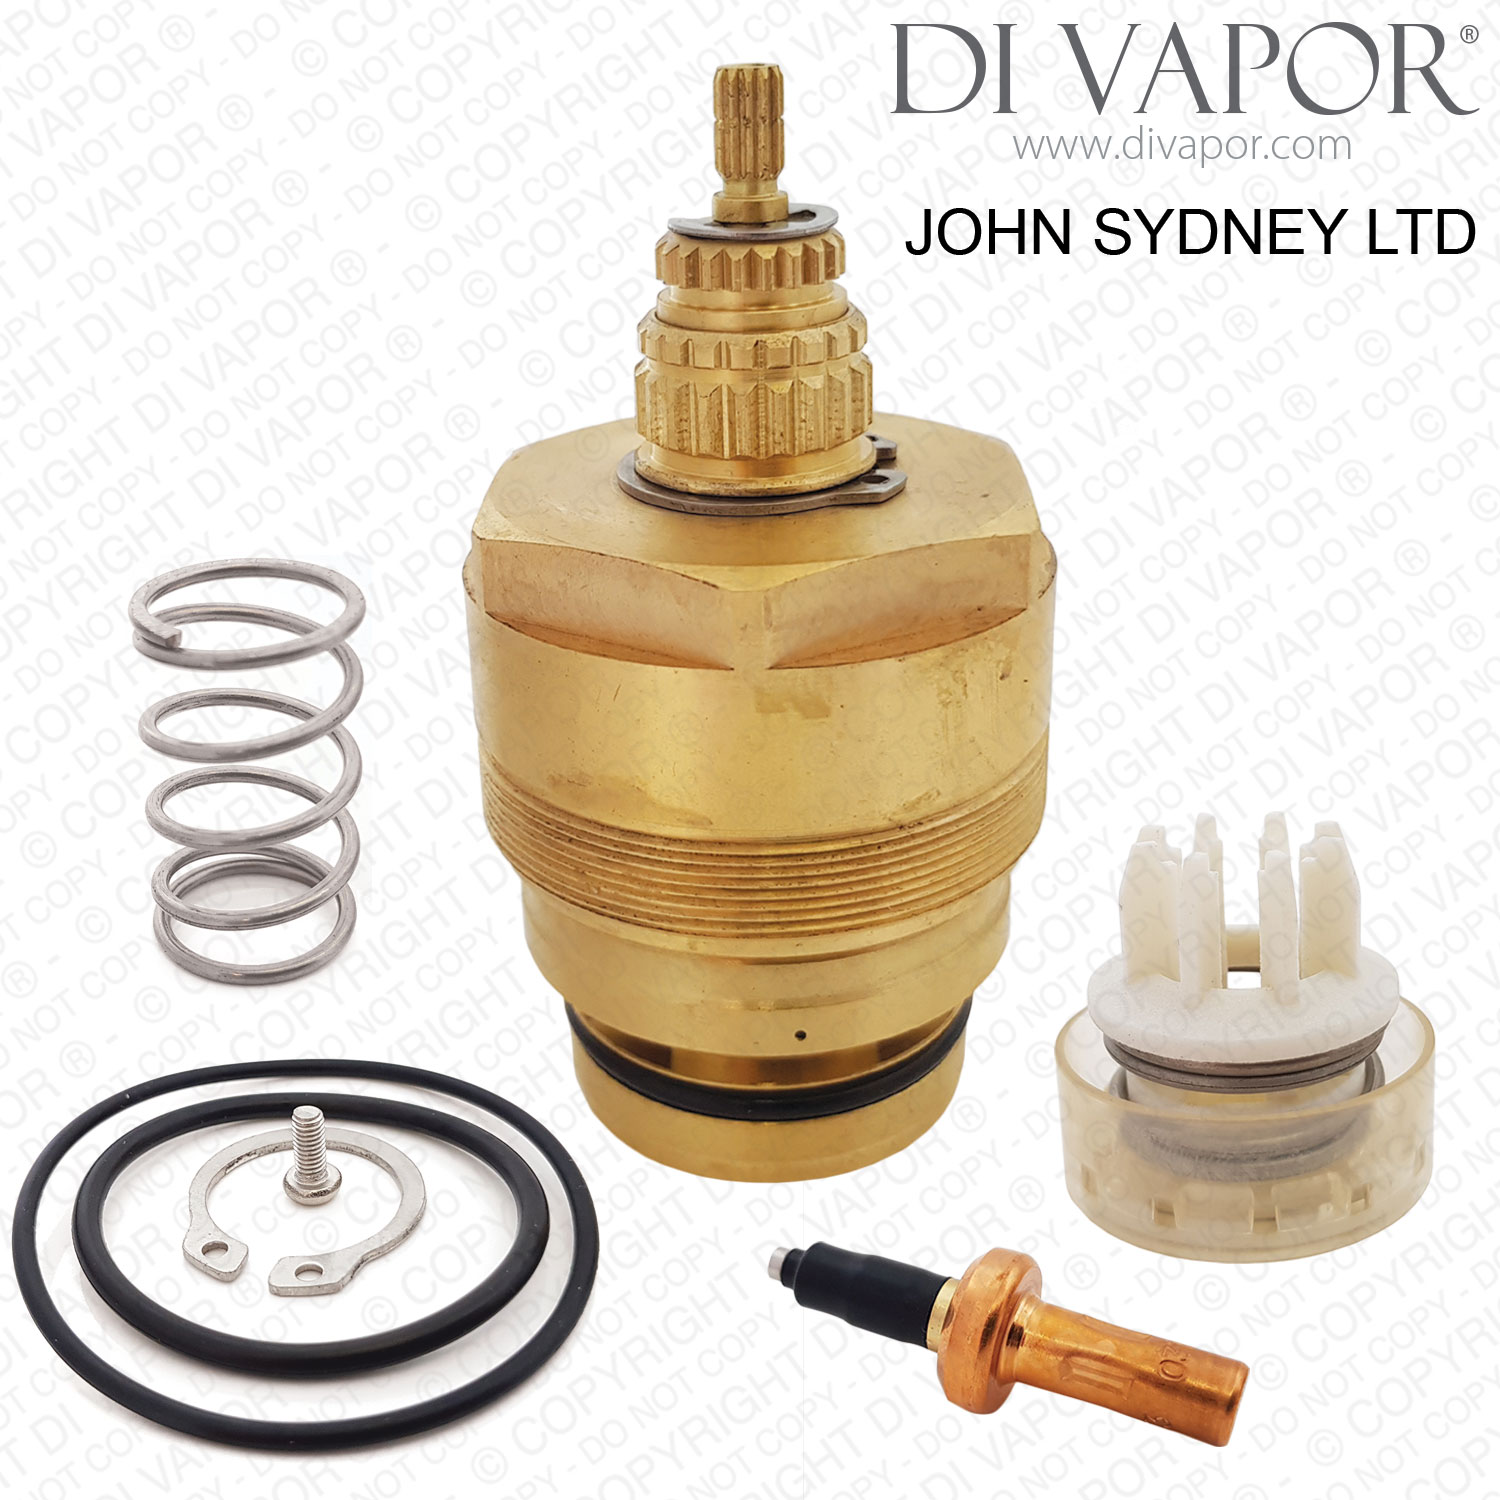 John Sydney Ltd Thermostatic Shower Cartridge Replacement